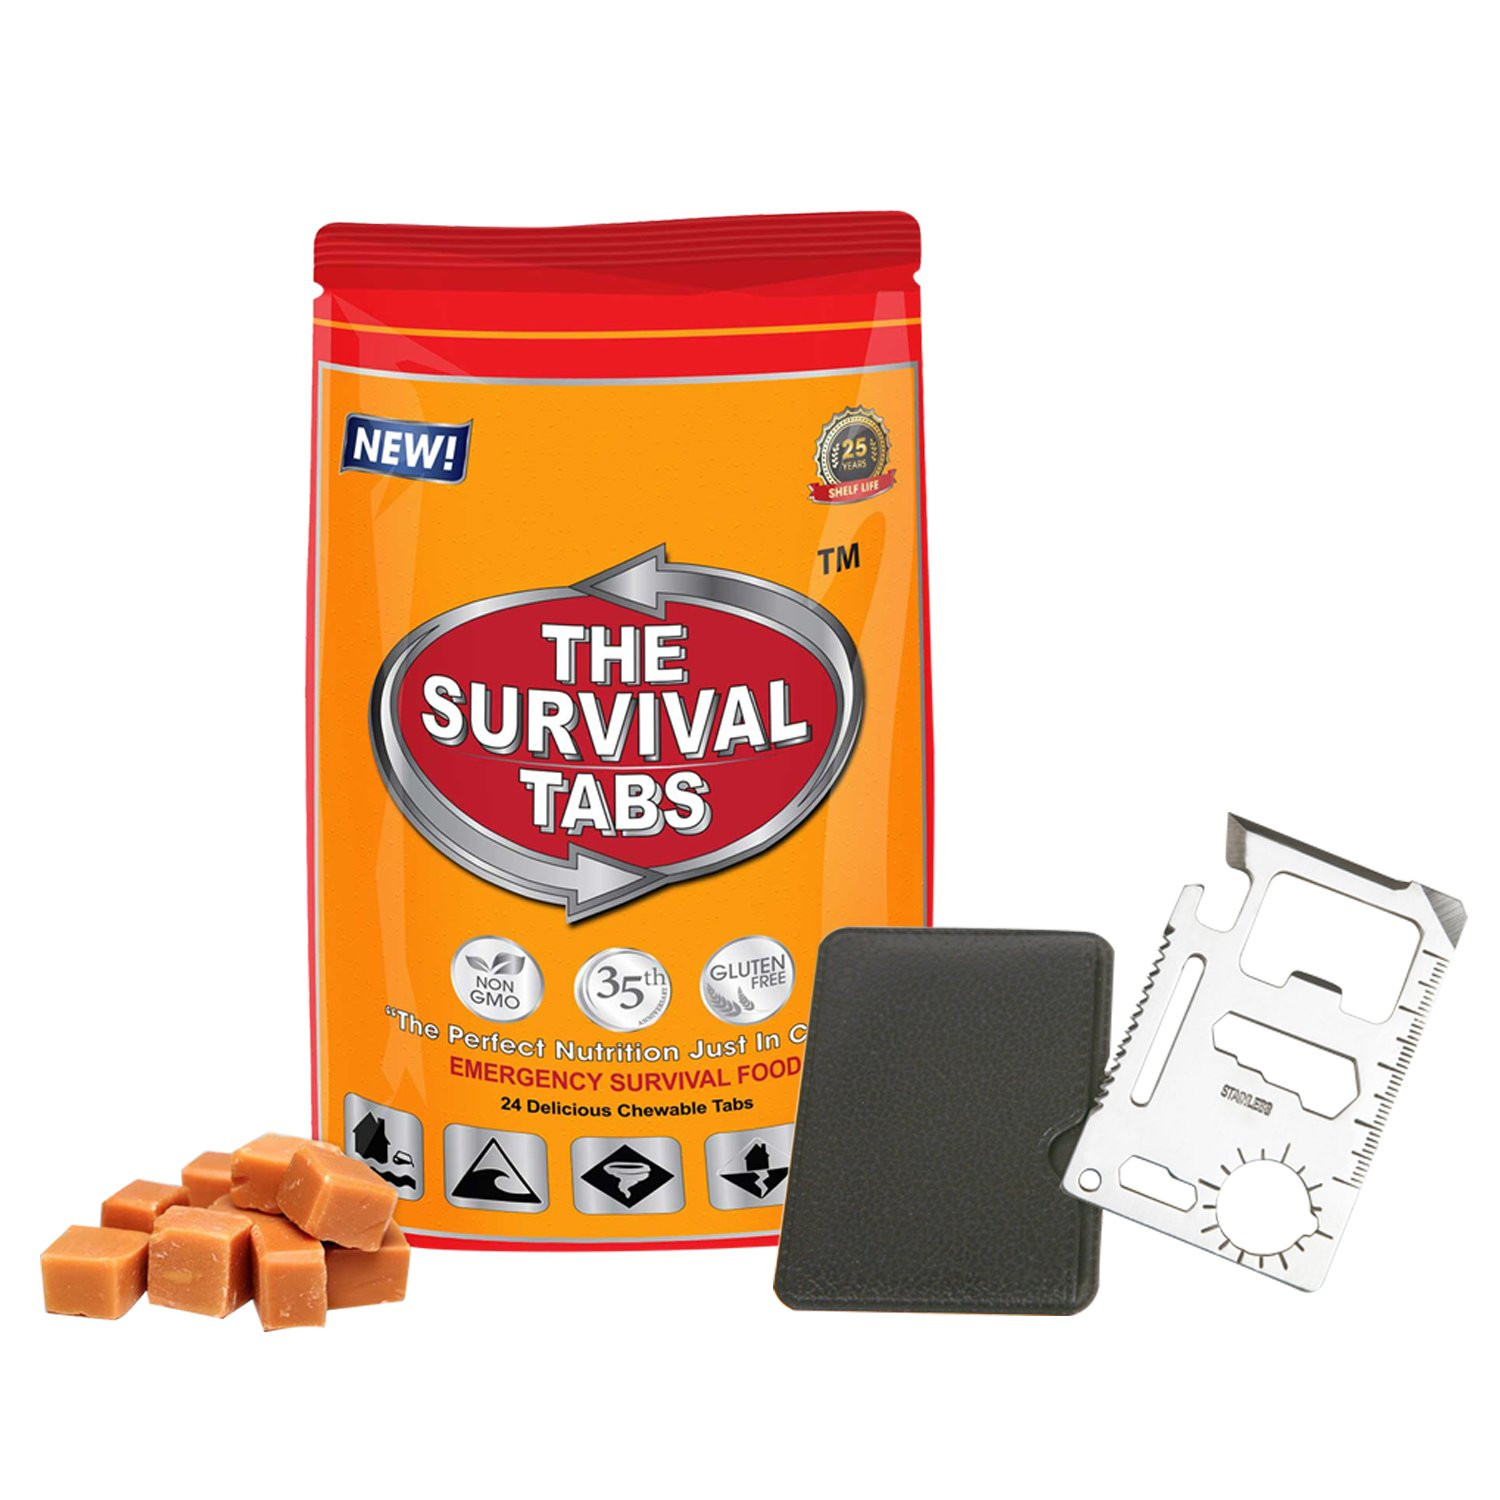 11 in1 Multi Tools Hunting Survival Camping Pocket Military Credit Card Knife + New Advanced Formula MRE Meals Ready-to-eat Survival Meal 2-Day supply 24 tabs Ultimate Bugout Food 25 Years shelf life Gluten Free and Non-GMO - Butterscotch Flavor 1080p ультра тонкий зеркало заднего вида даш автомобиля видеокамера